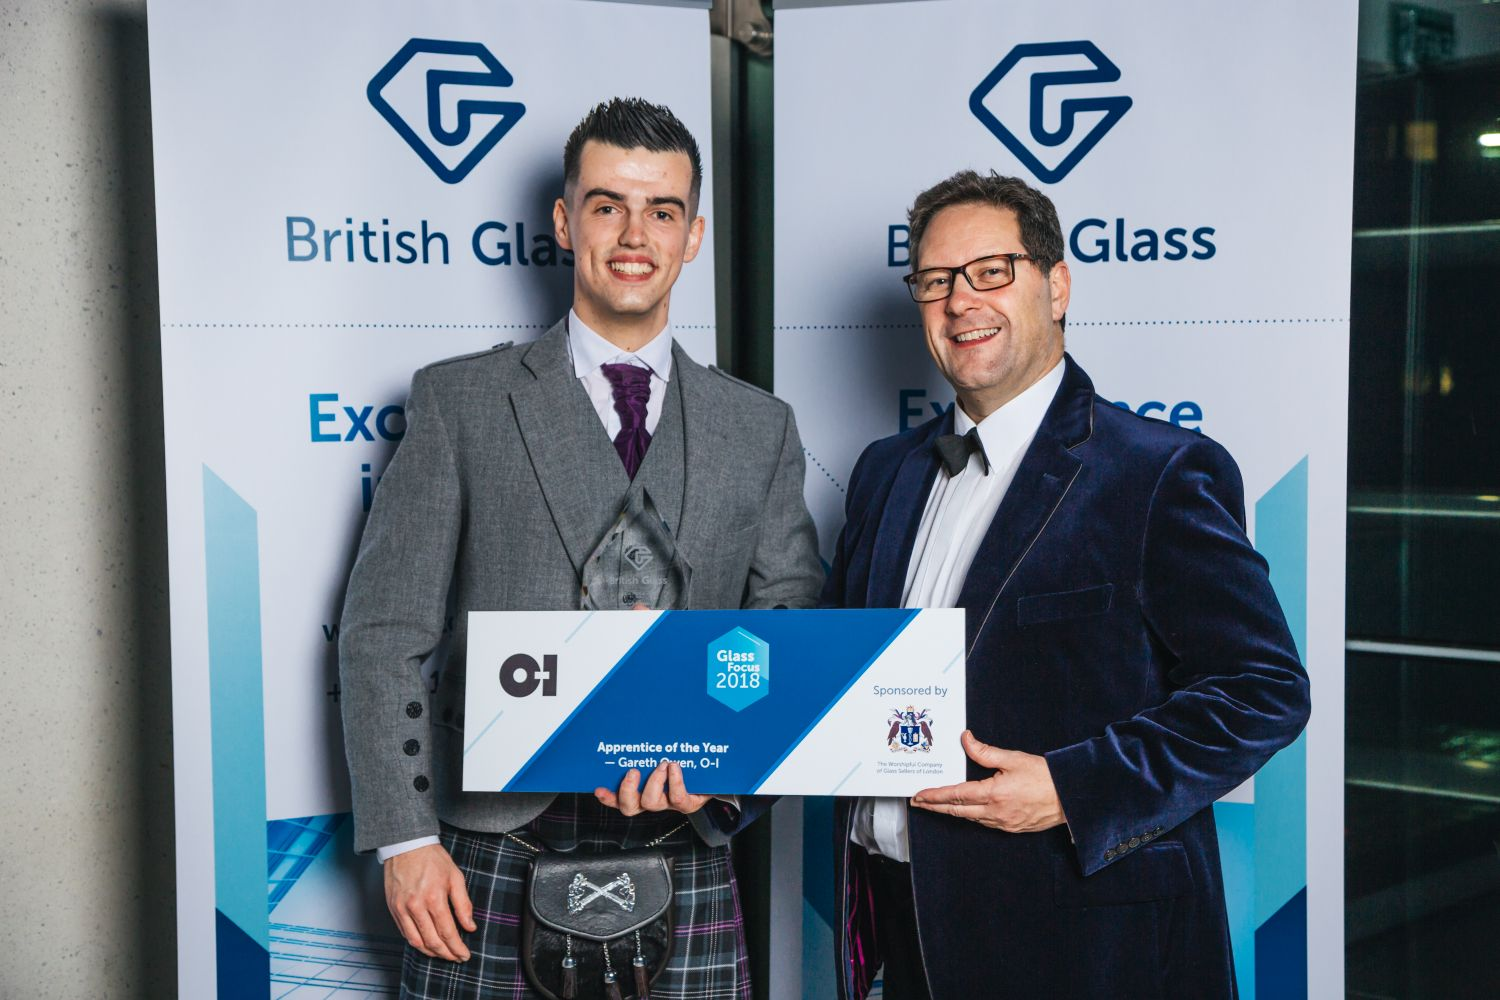 Apprentice of the Year Gareth Owen of O-I and Mathew Demmon of the Glass Sellers of London